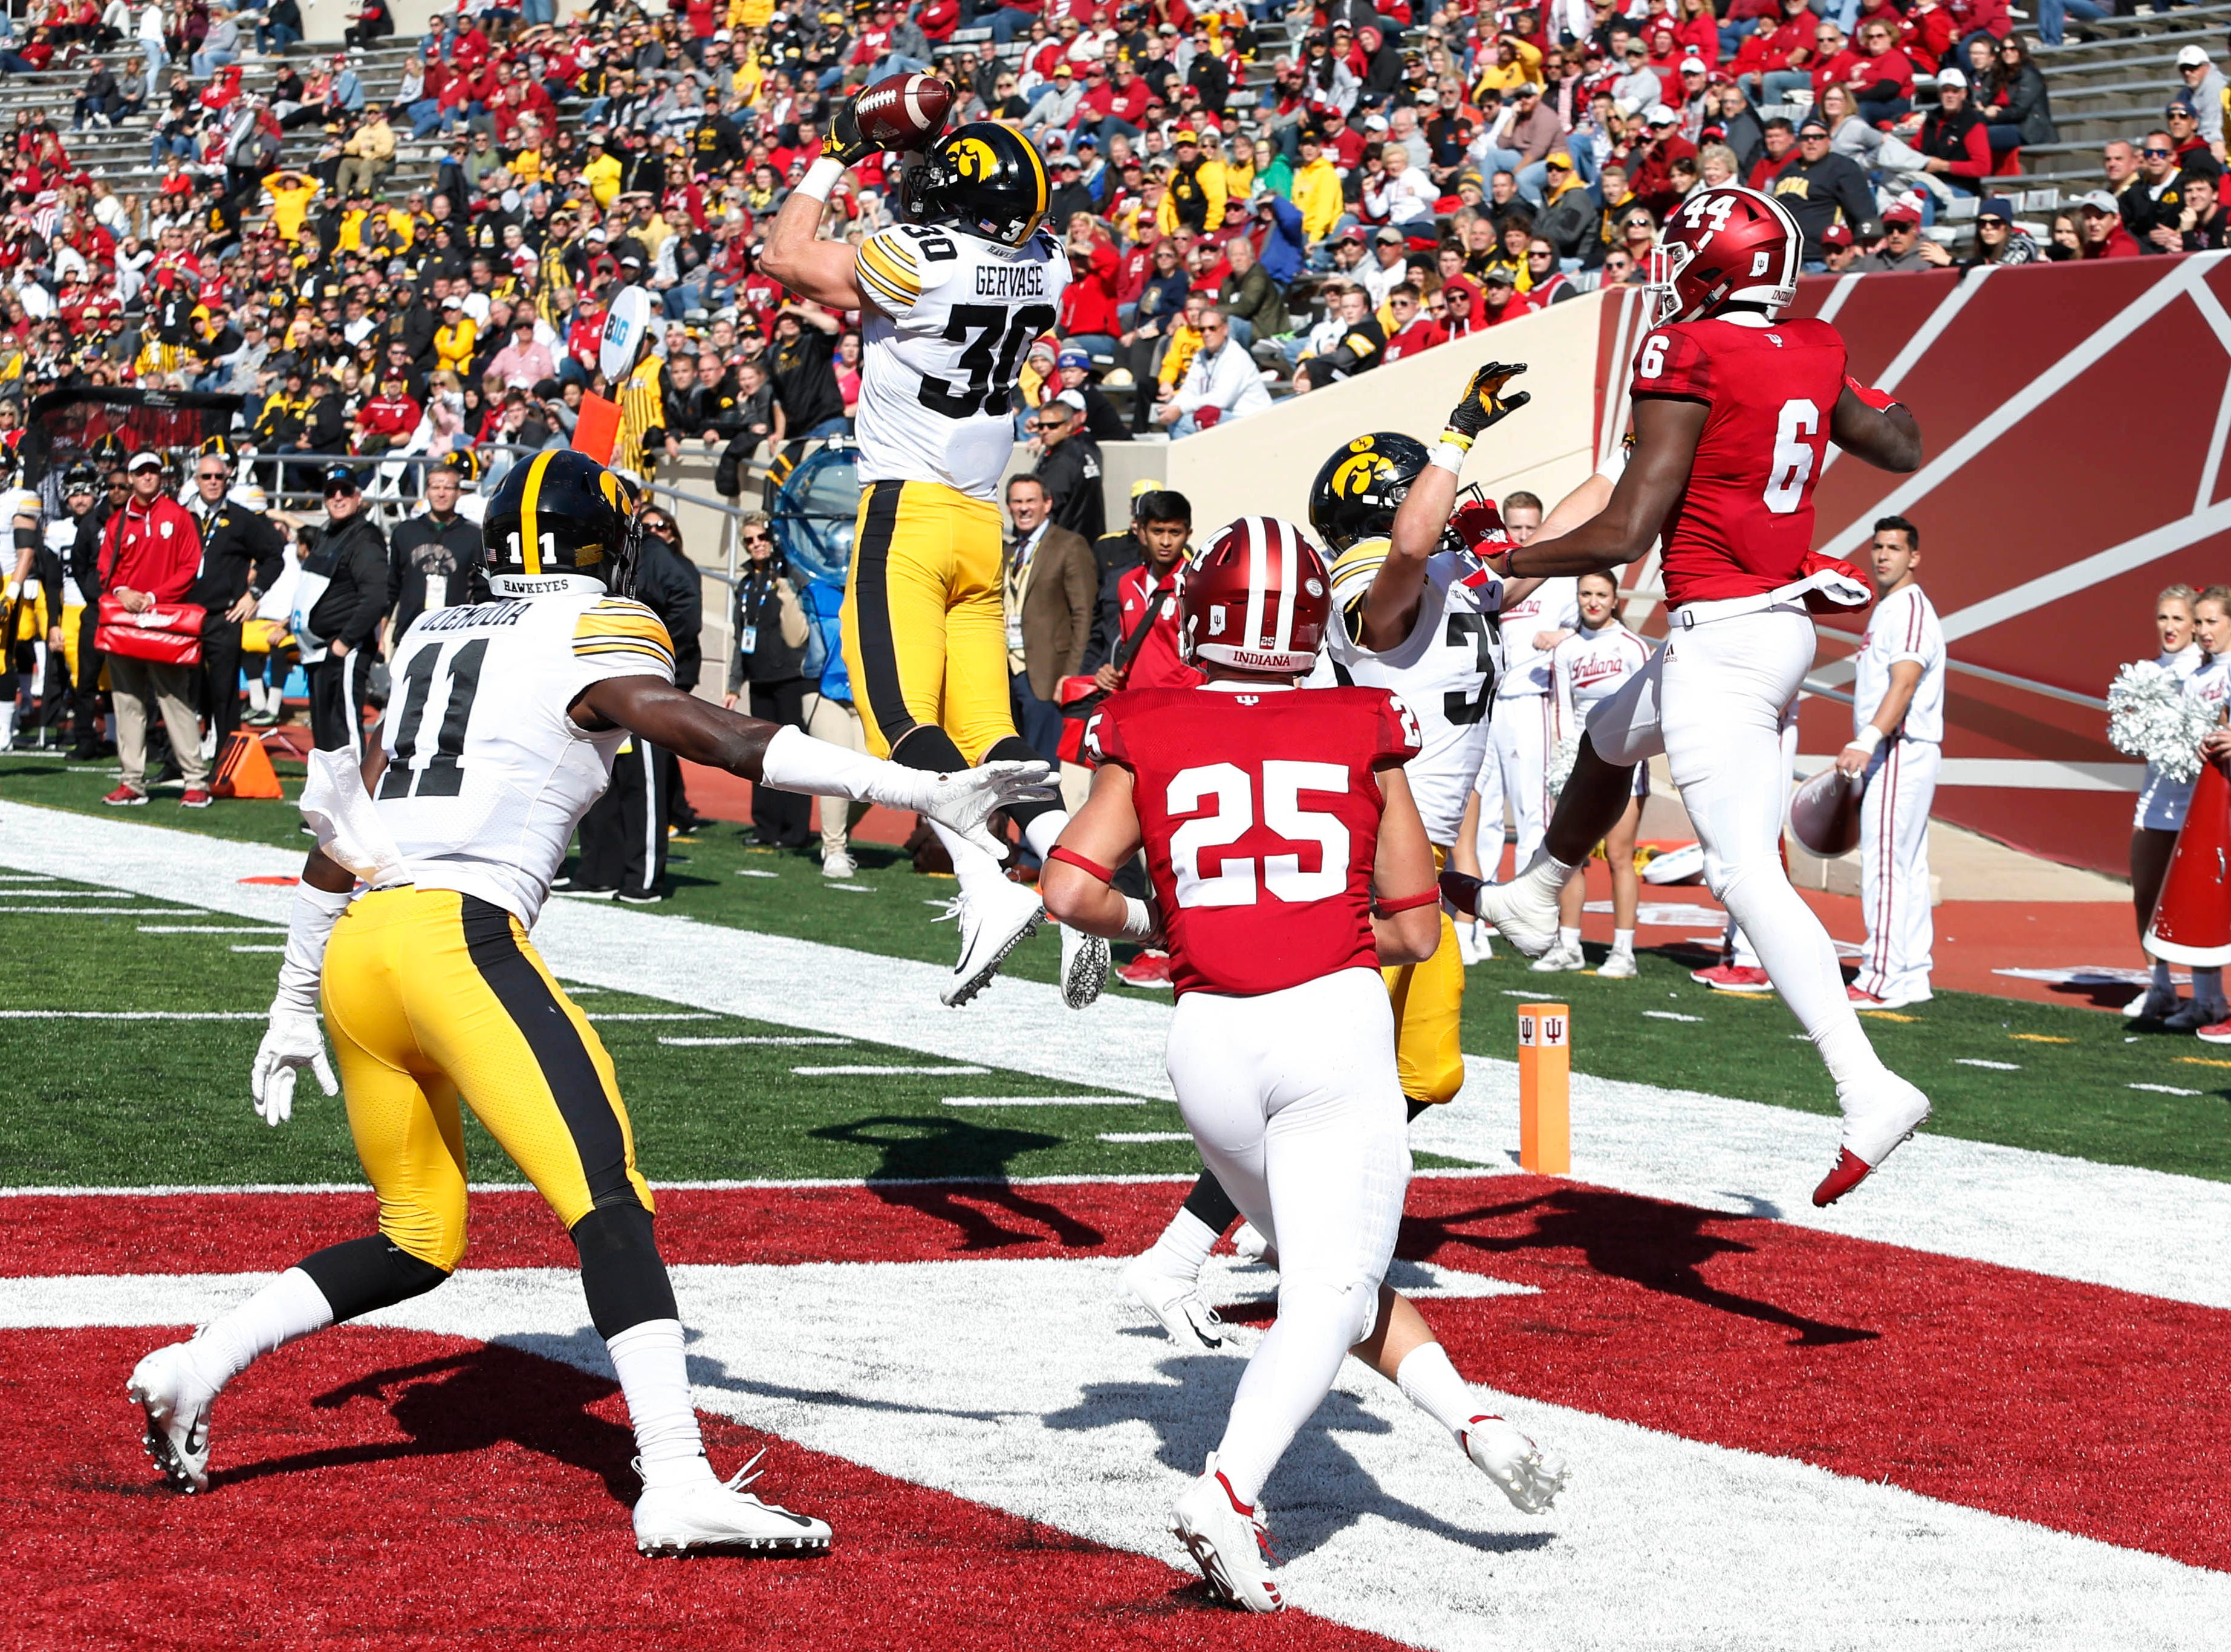 Iowa Hawkeyes defensive back Jake Gervase (30) intercepts the ball in the end zone against the Indiana Hoosiers during the fourth quarter at Memorial Stadium.